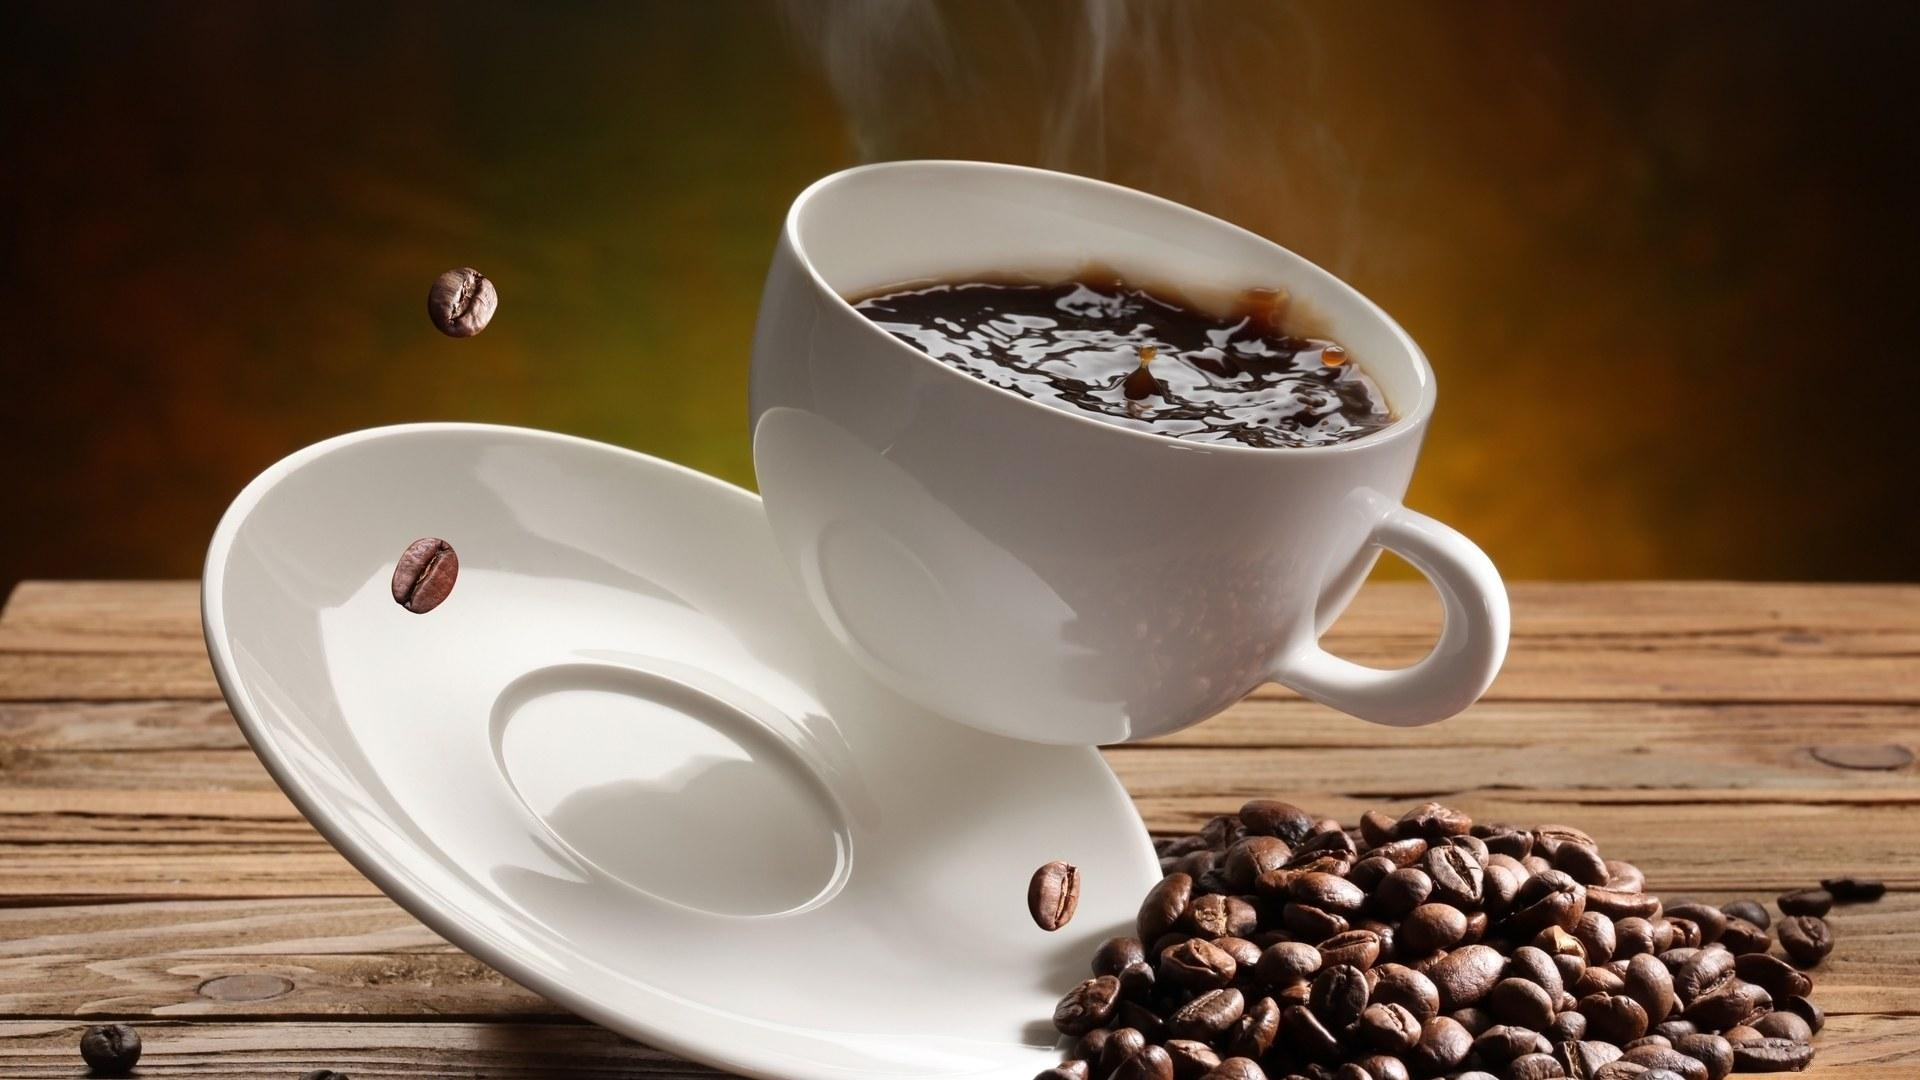 Falling Coffee Cup Wallpapers - 1920x1080 - 300727